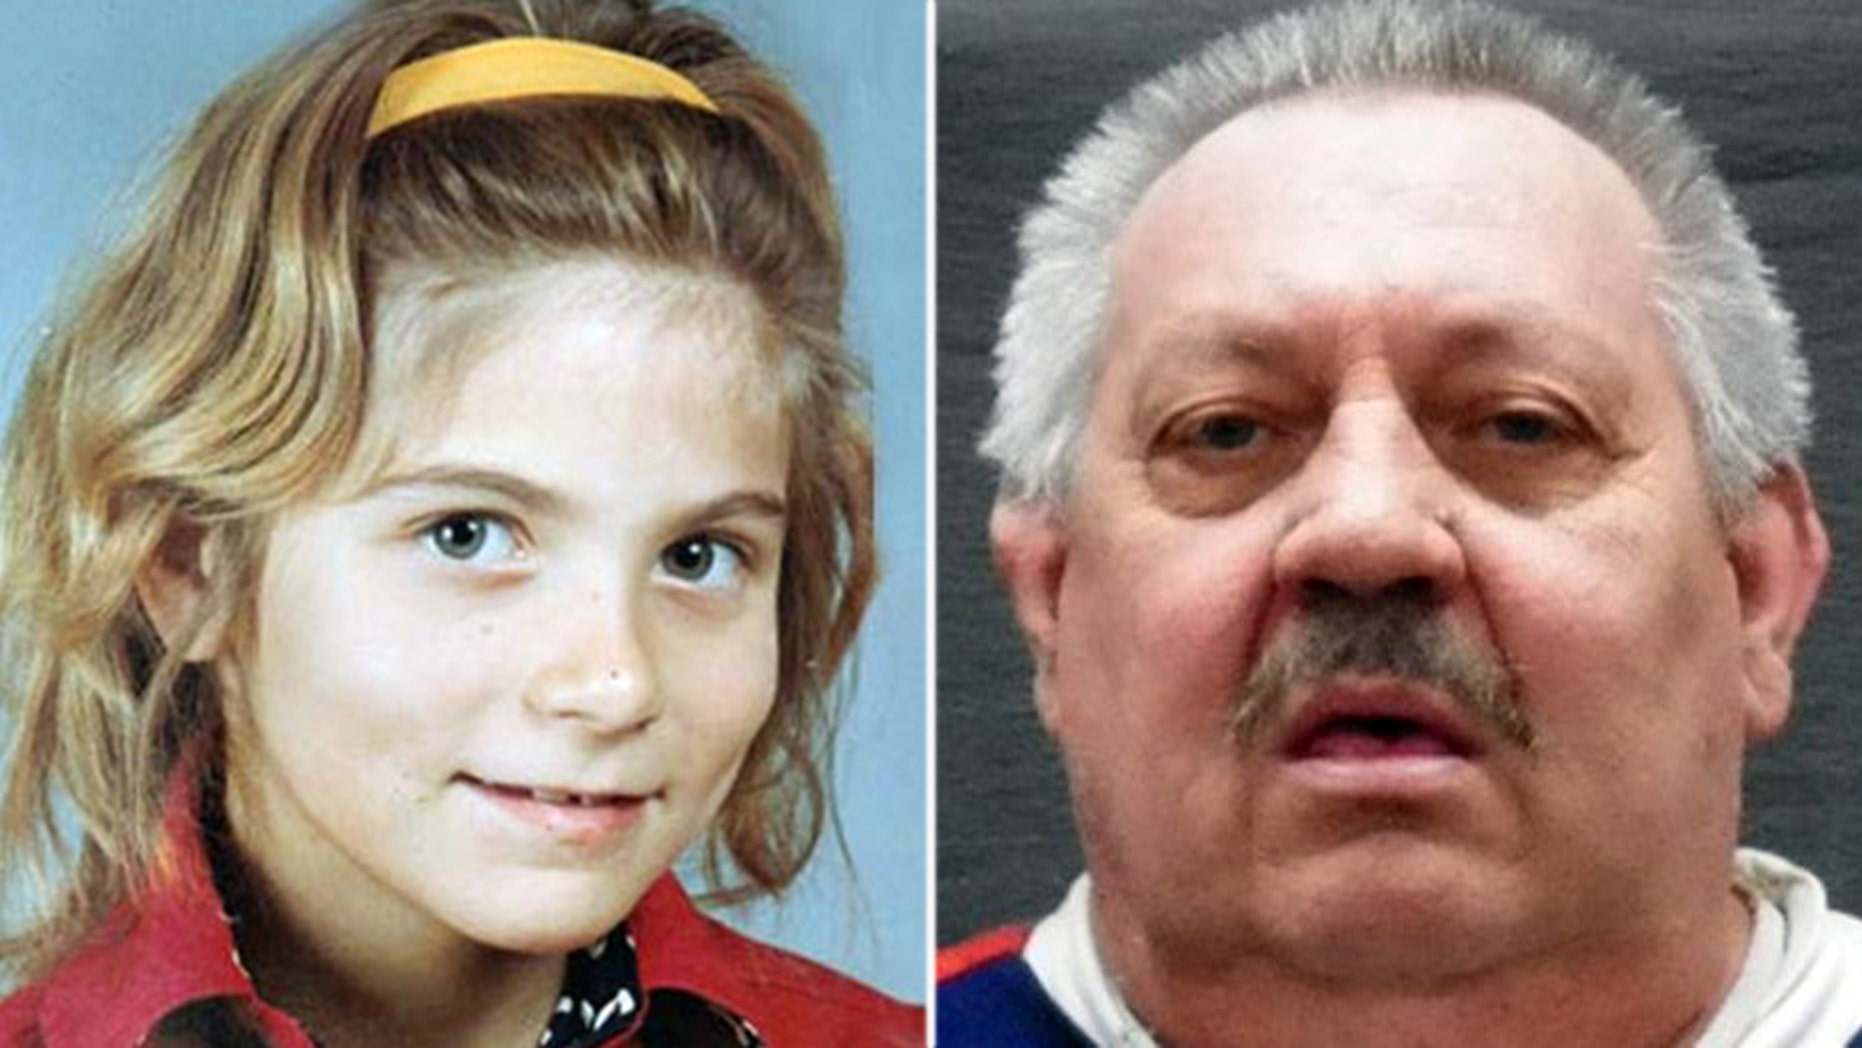 Arthur Ream, a 68-year-old convicted pedophile and the prime suspect in the search for Kimberly King, is considered a person of interest in the disappearances of several girls in Michigan.